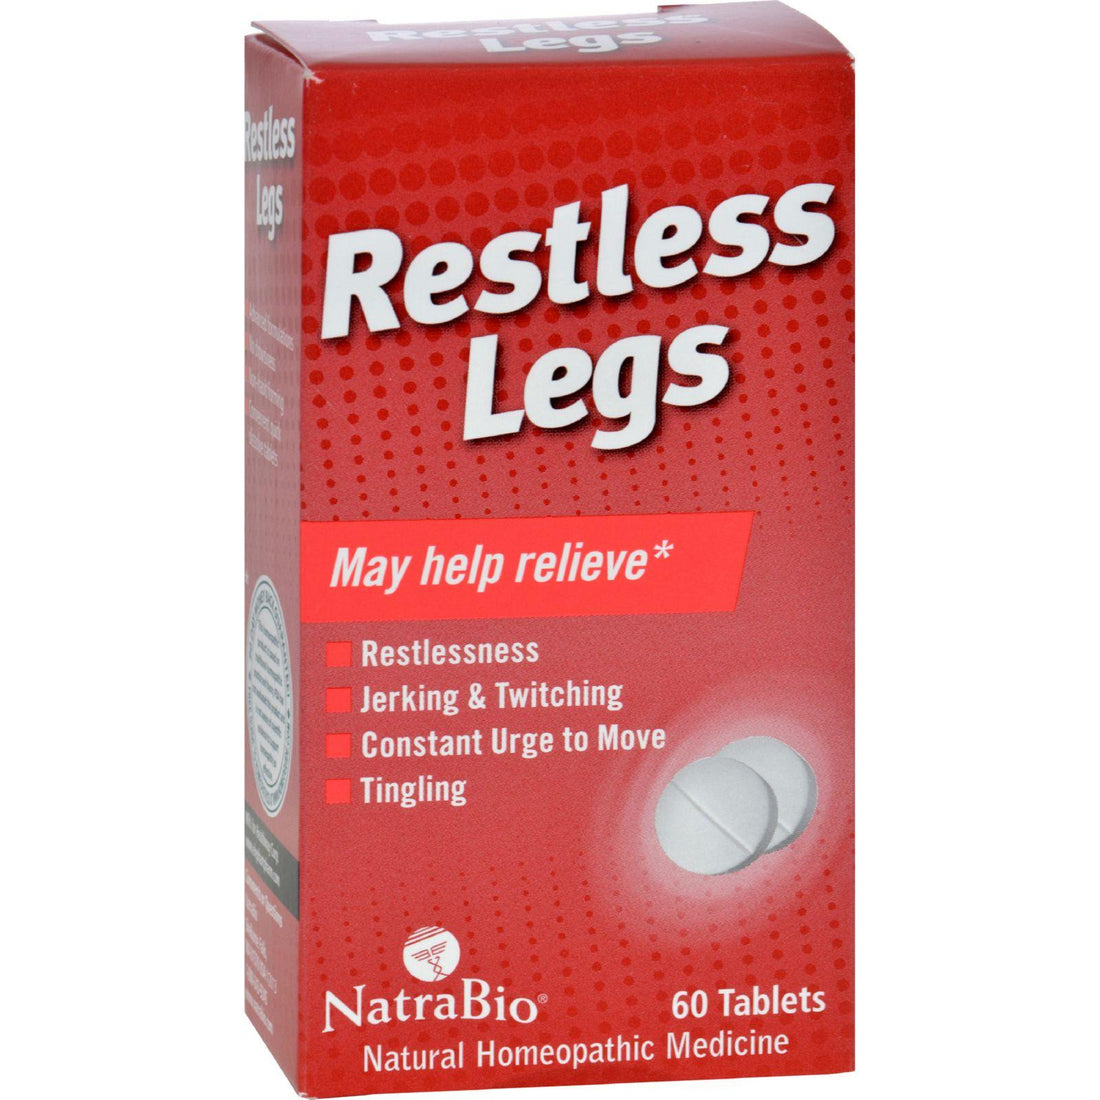 Mother Mantis: Natrabio Restless Legs - 60 Tablets Natrabio